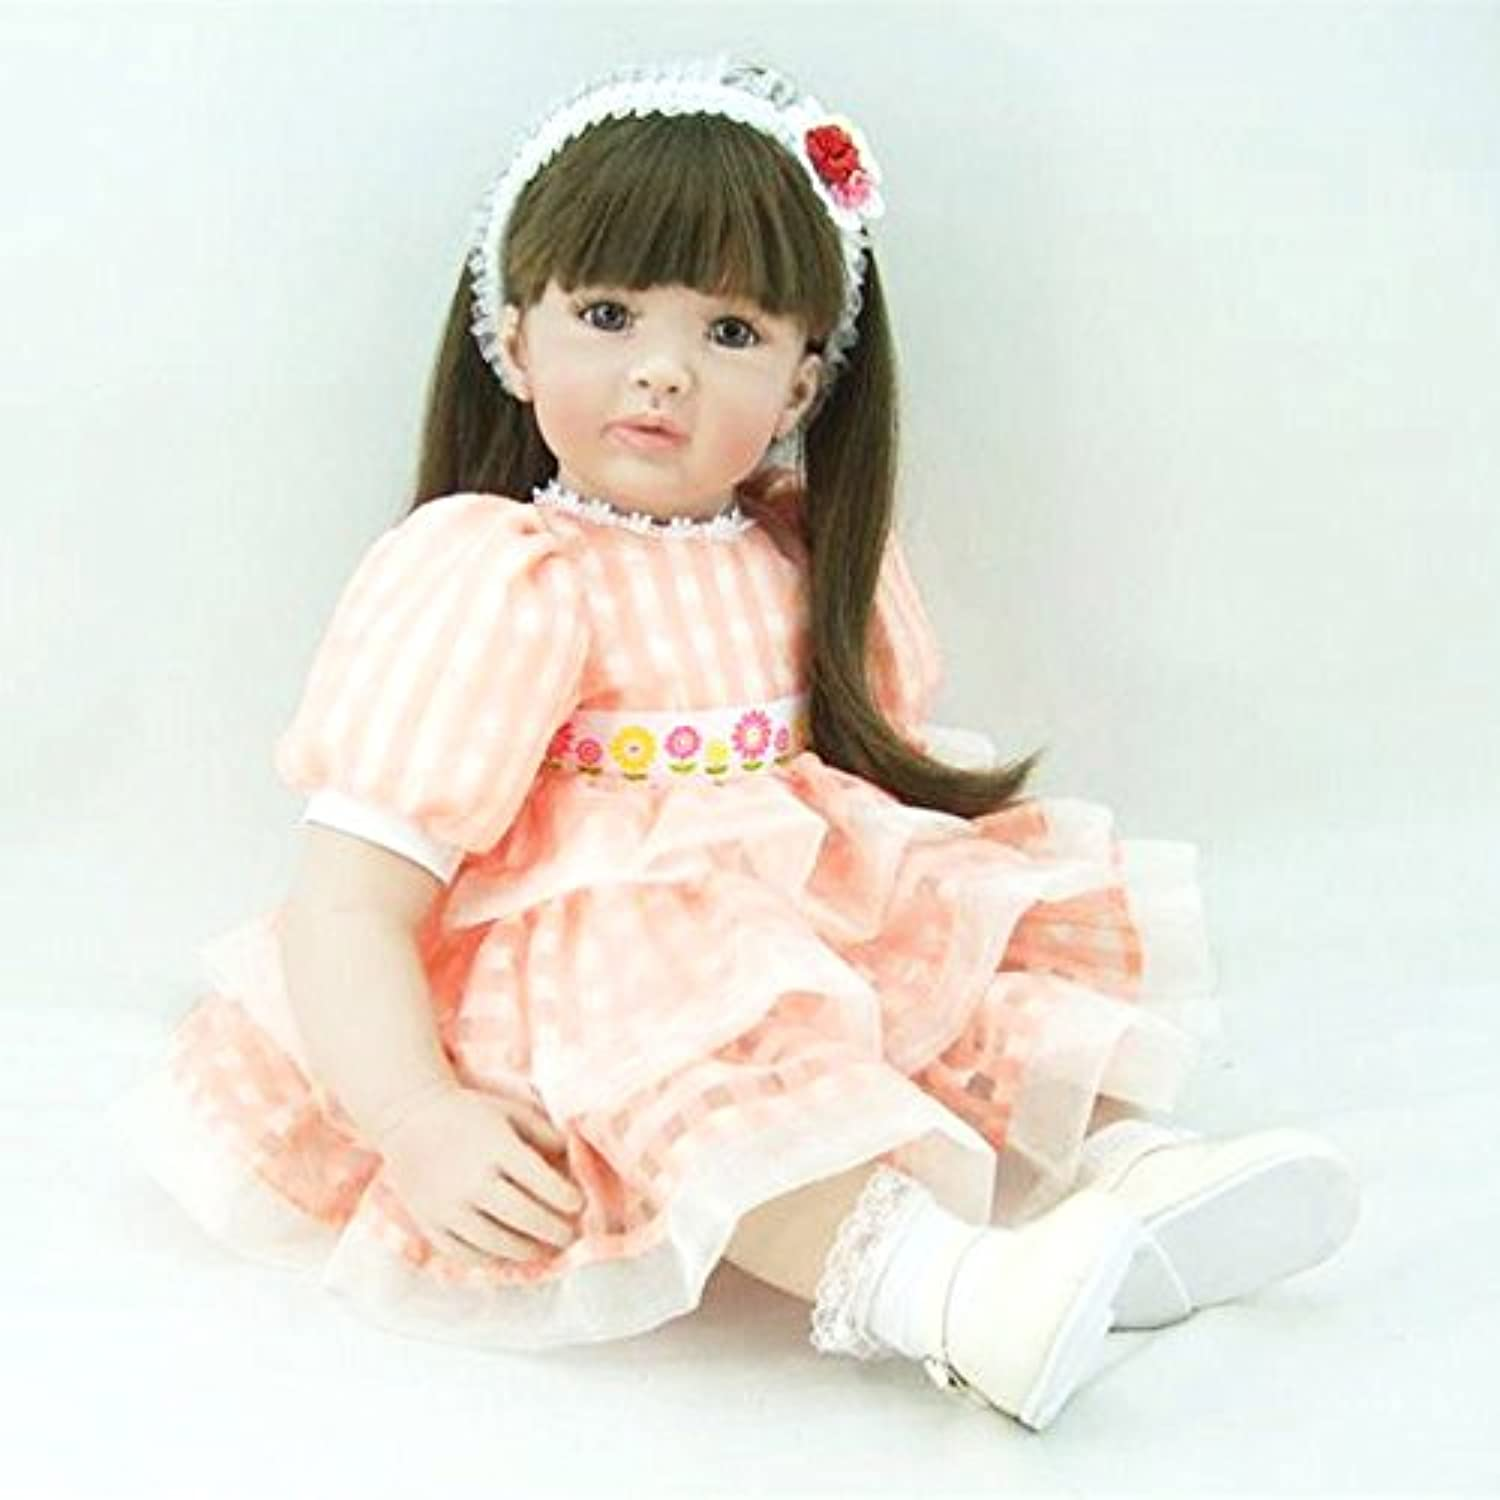 PursueベビーソフトビニールLife Like Poseableプリンセス人形with Long Hair、24インチリアルなWeighted Toddler Doll With Matching Outfits